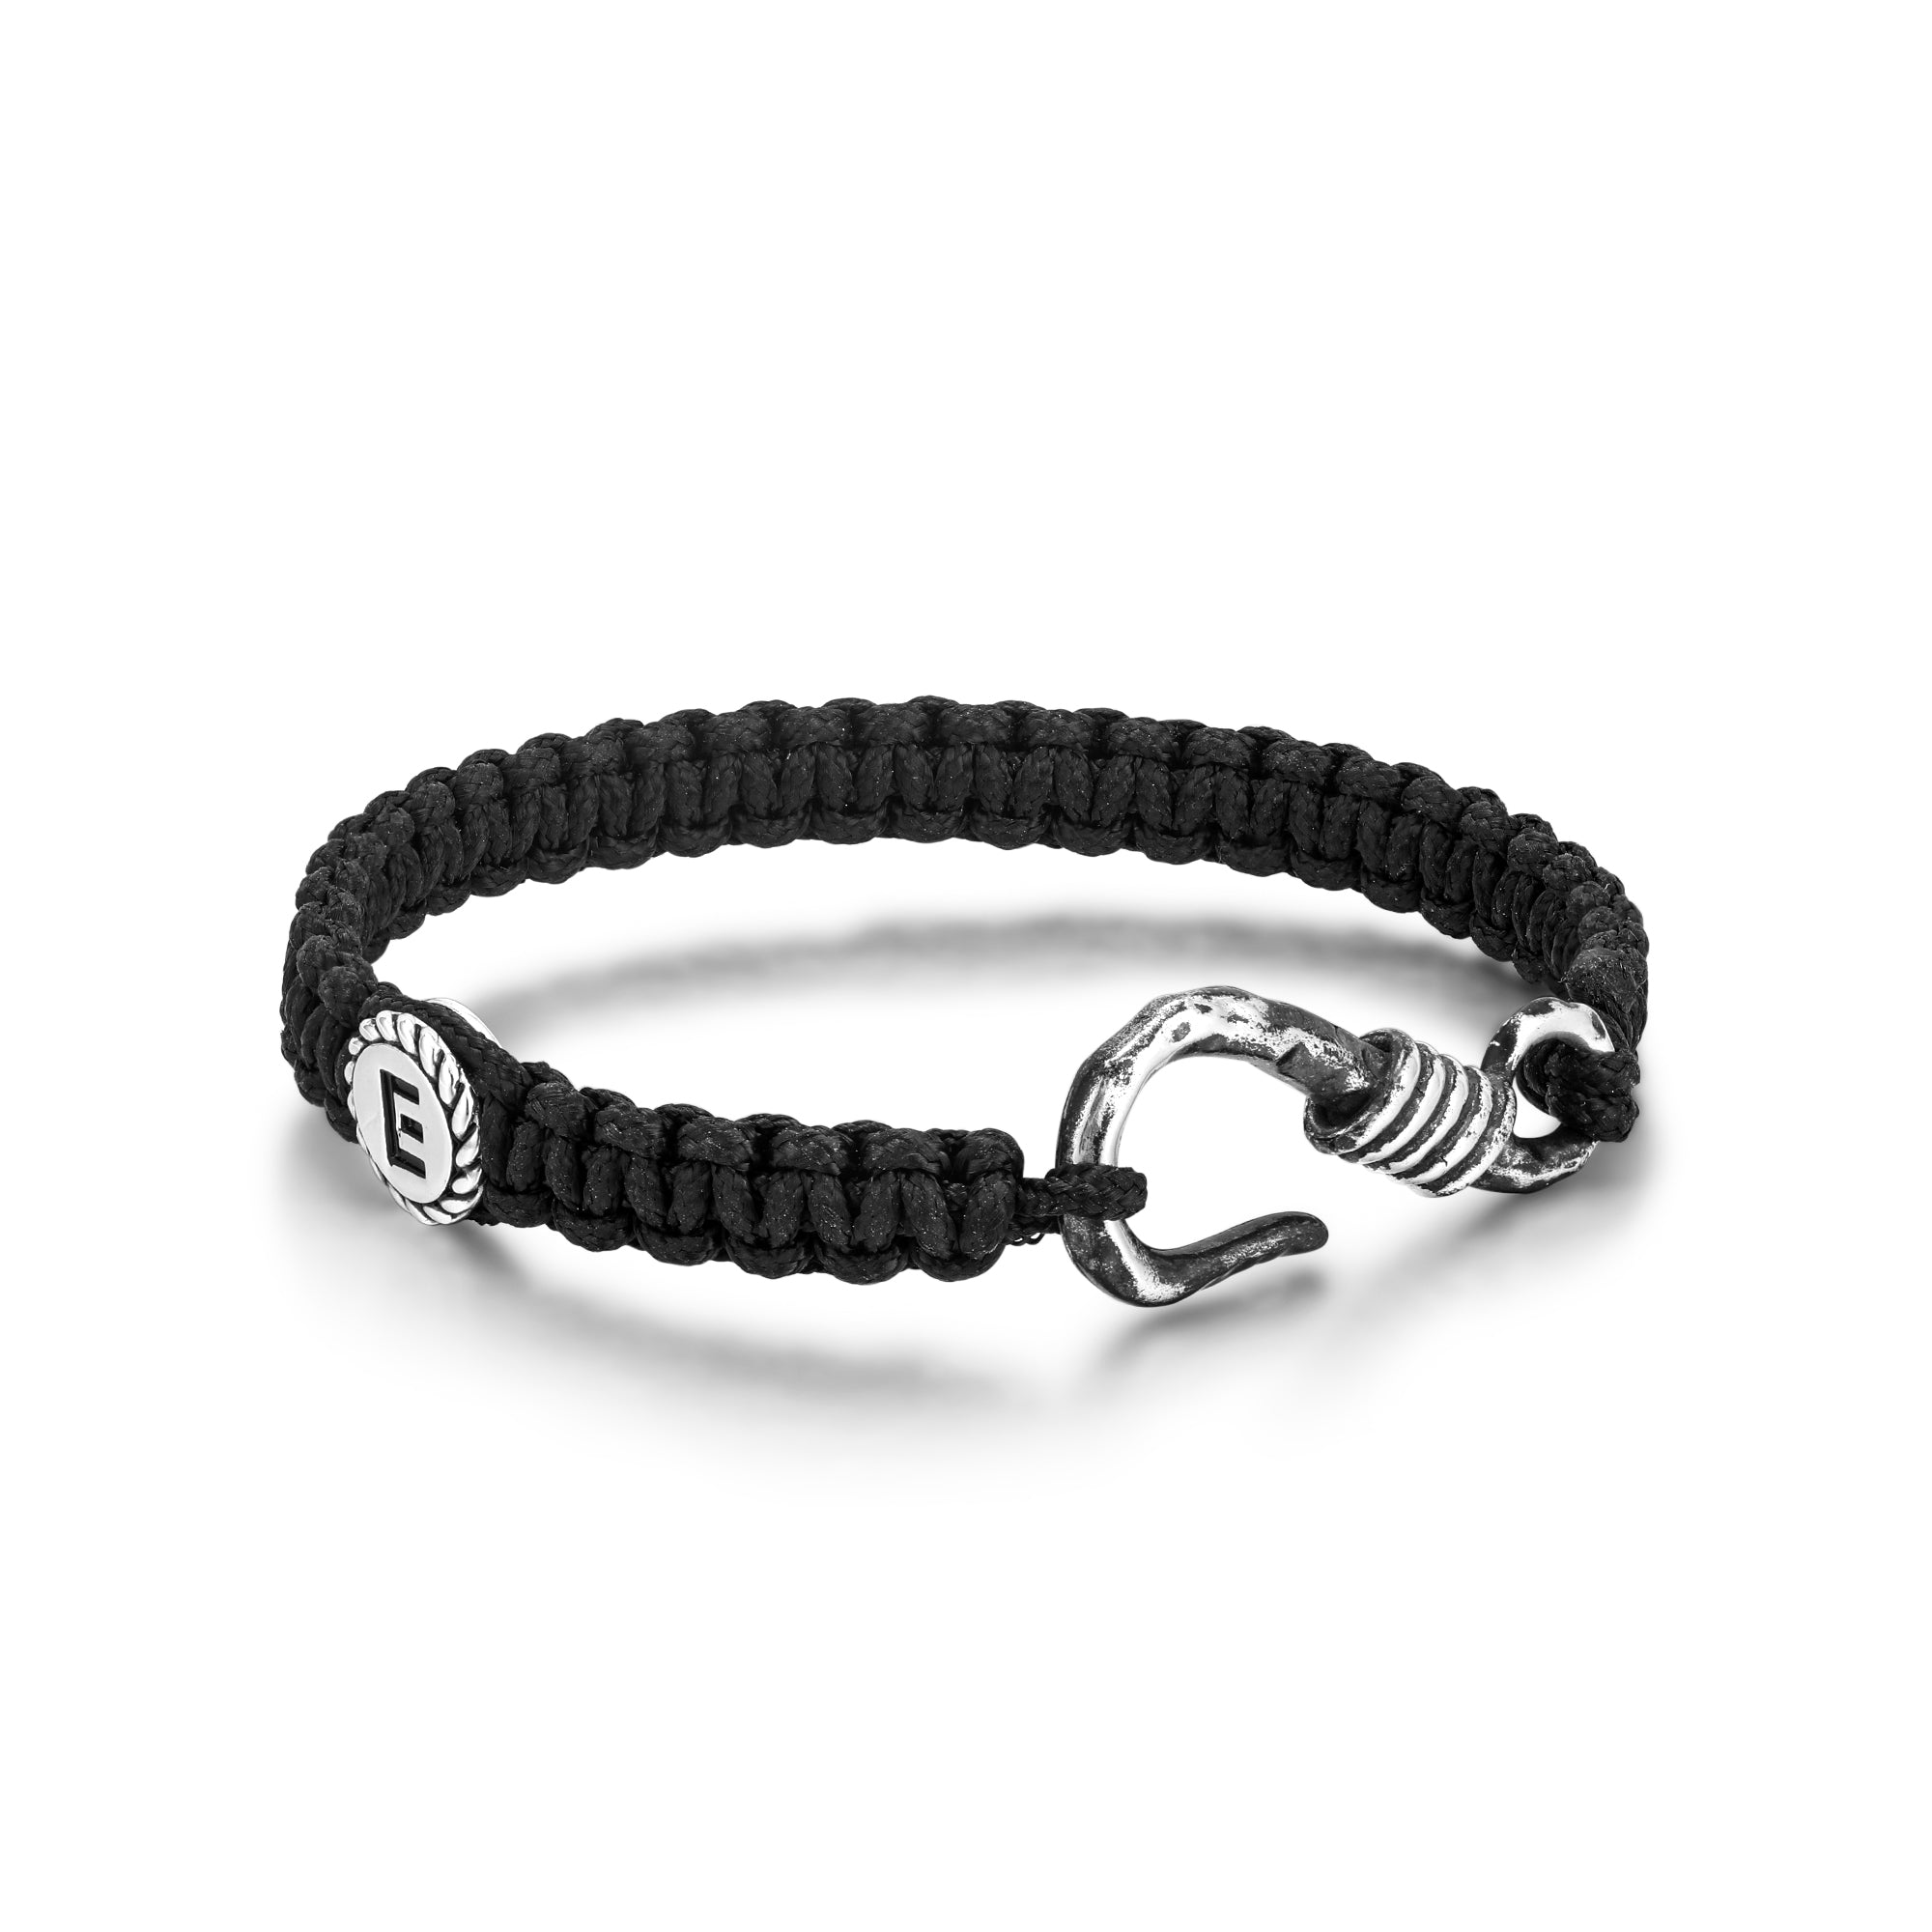 Black Woven Bracelet with Hook Closure and Small E Disk